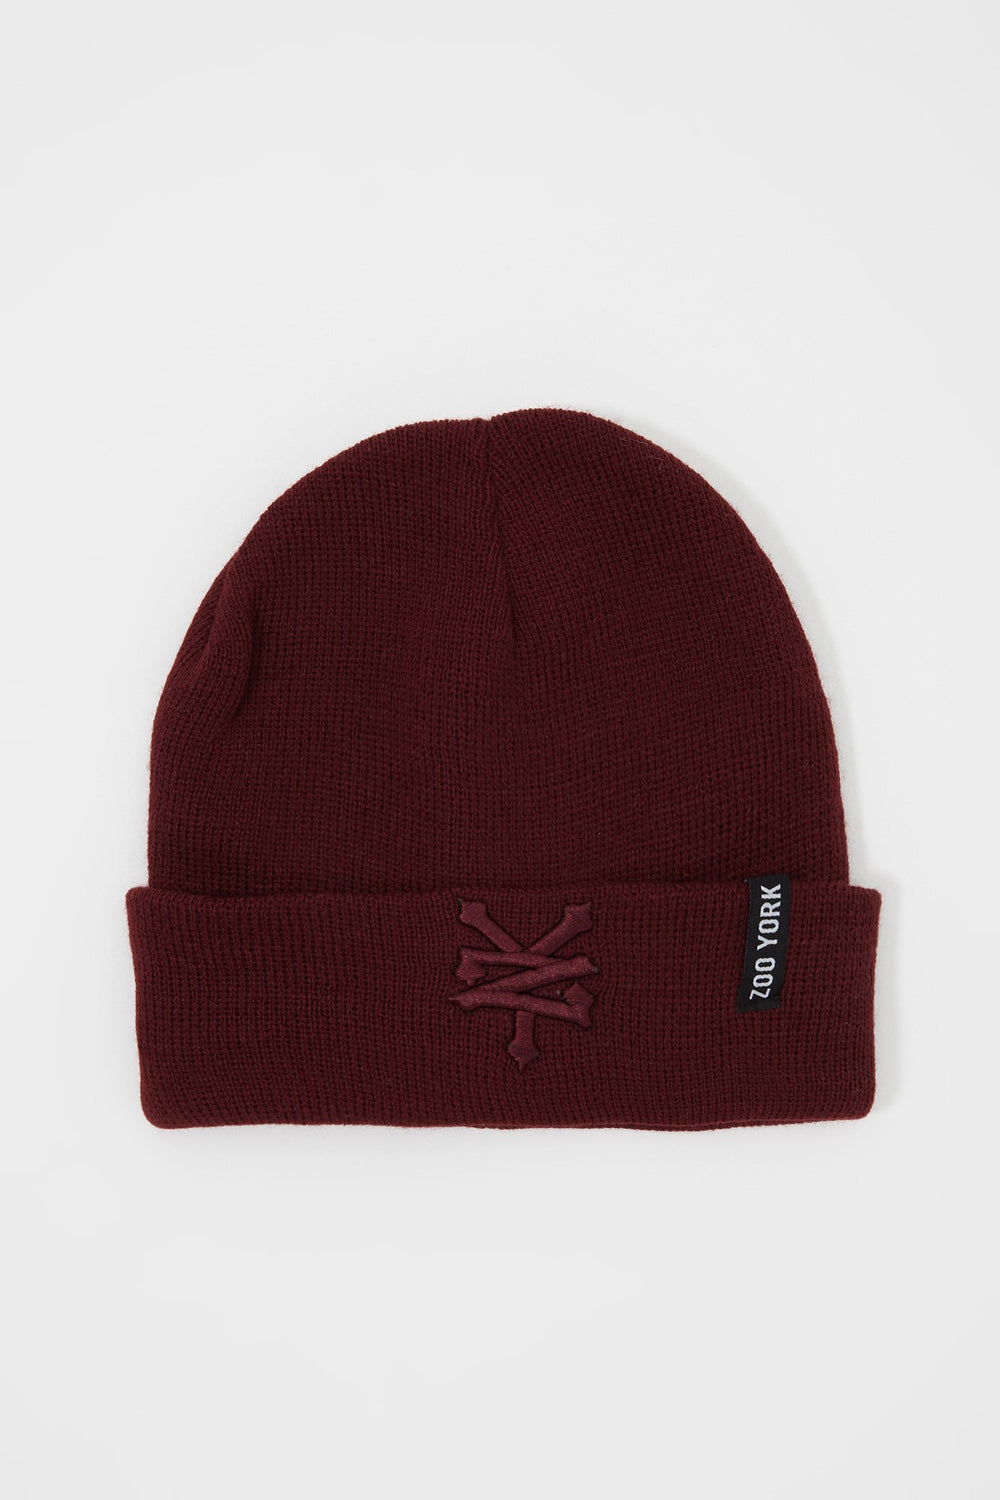 Zoo York Mens Embroidered Beanie Burgundy